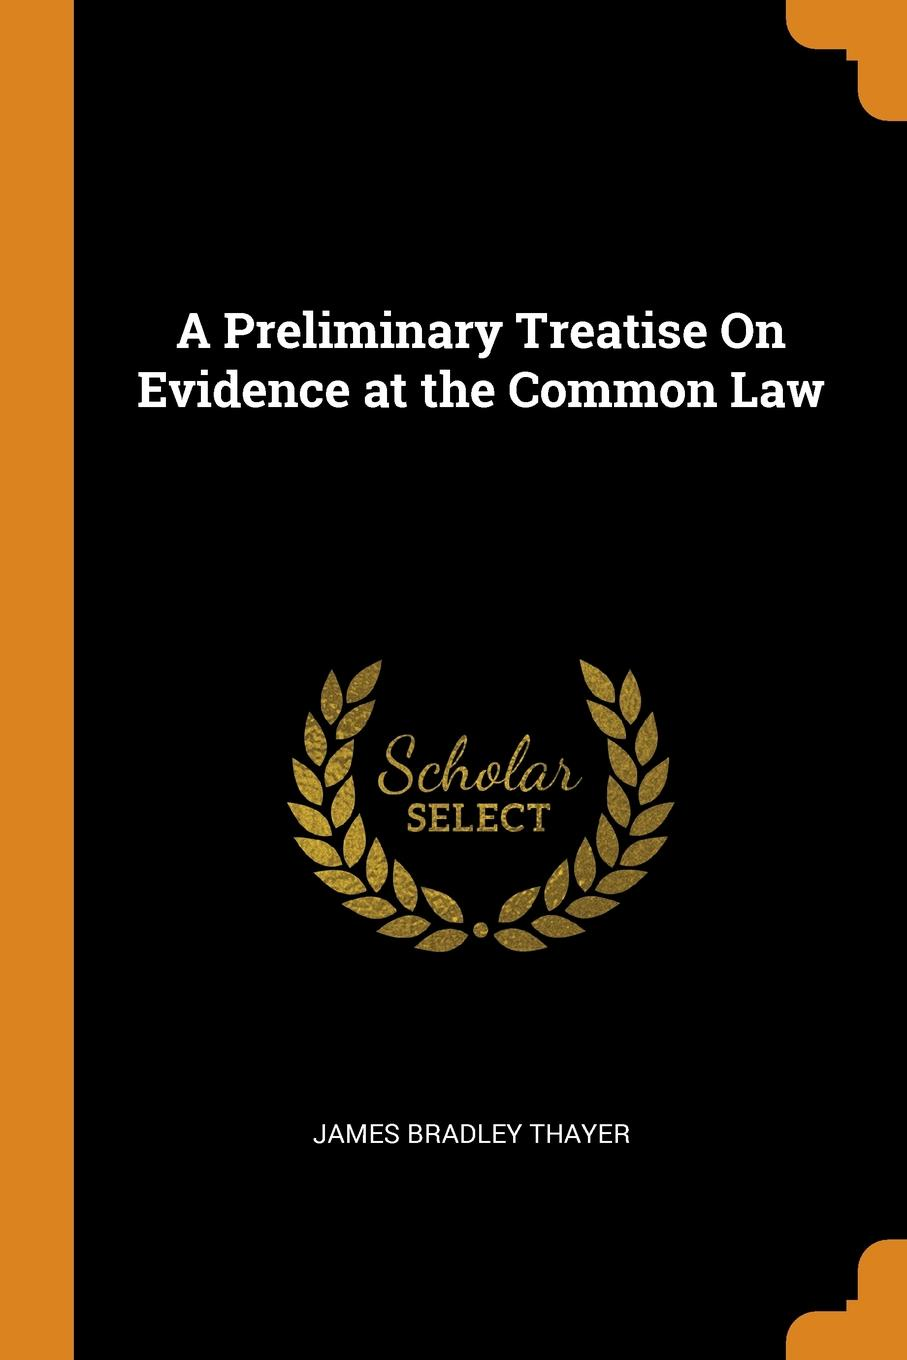 A Preliminary Treatise On Evidence at the Common Law. James Bradley Thayer